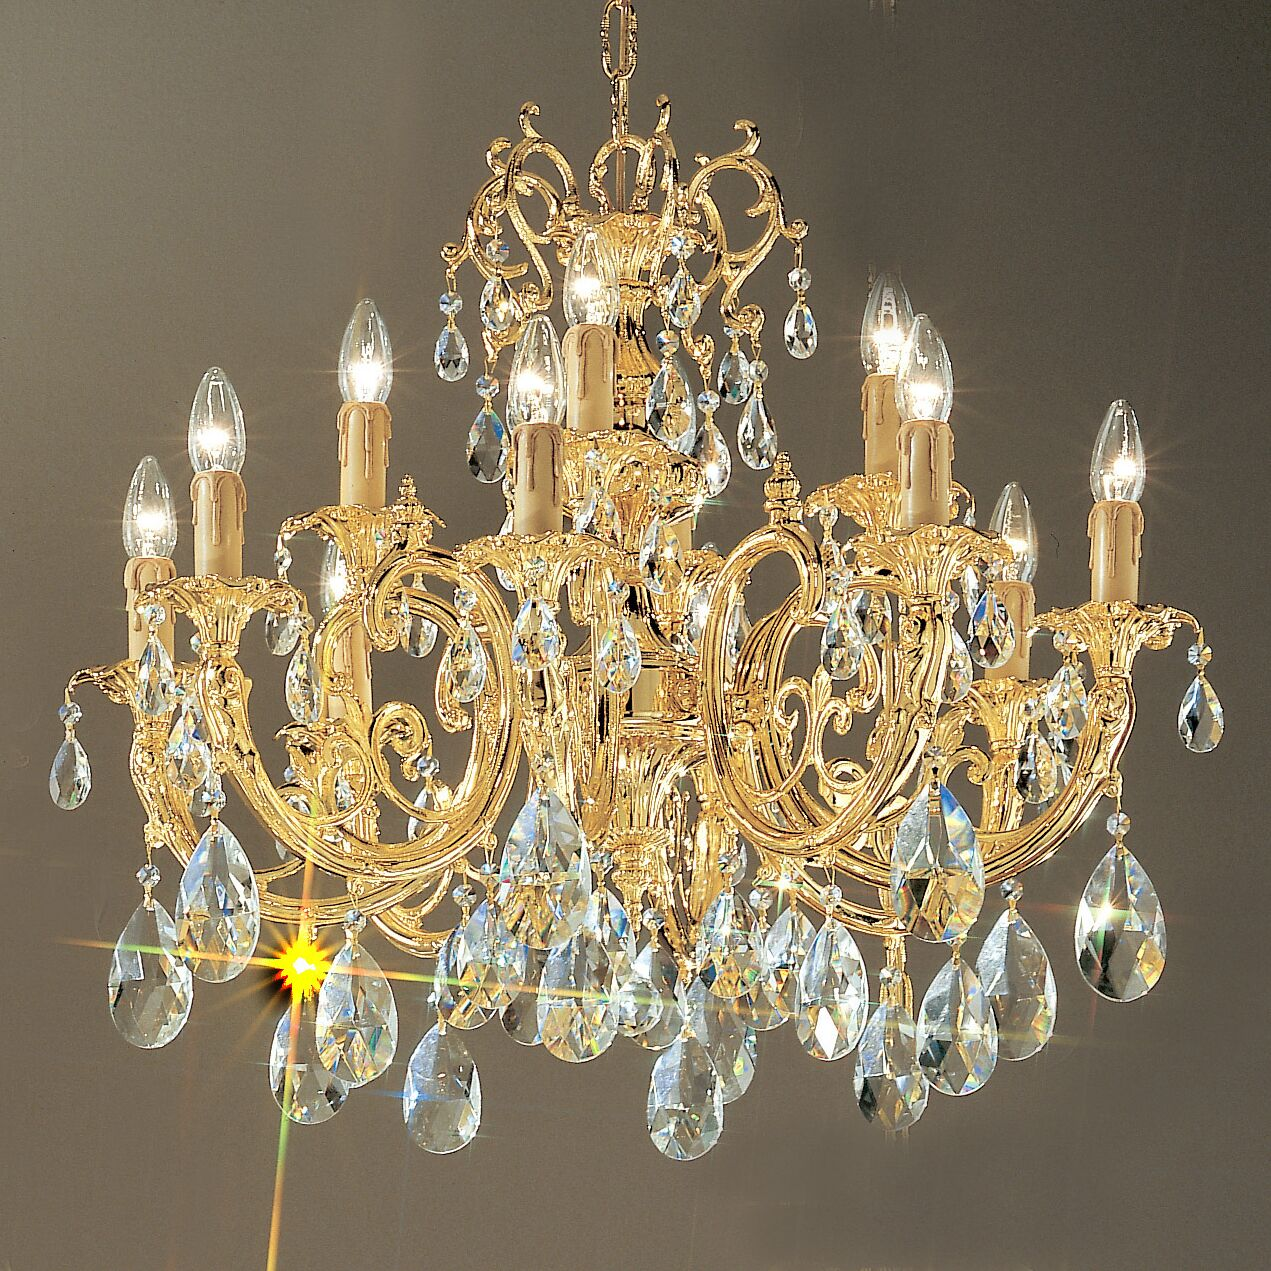 Princeton 12-Light Chandelier Finish: 24K Gold Plate, Crystal Type: Swarovski Elements